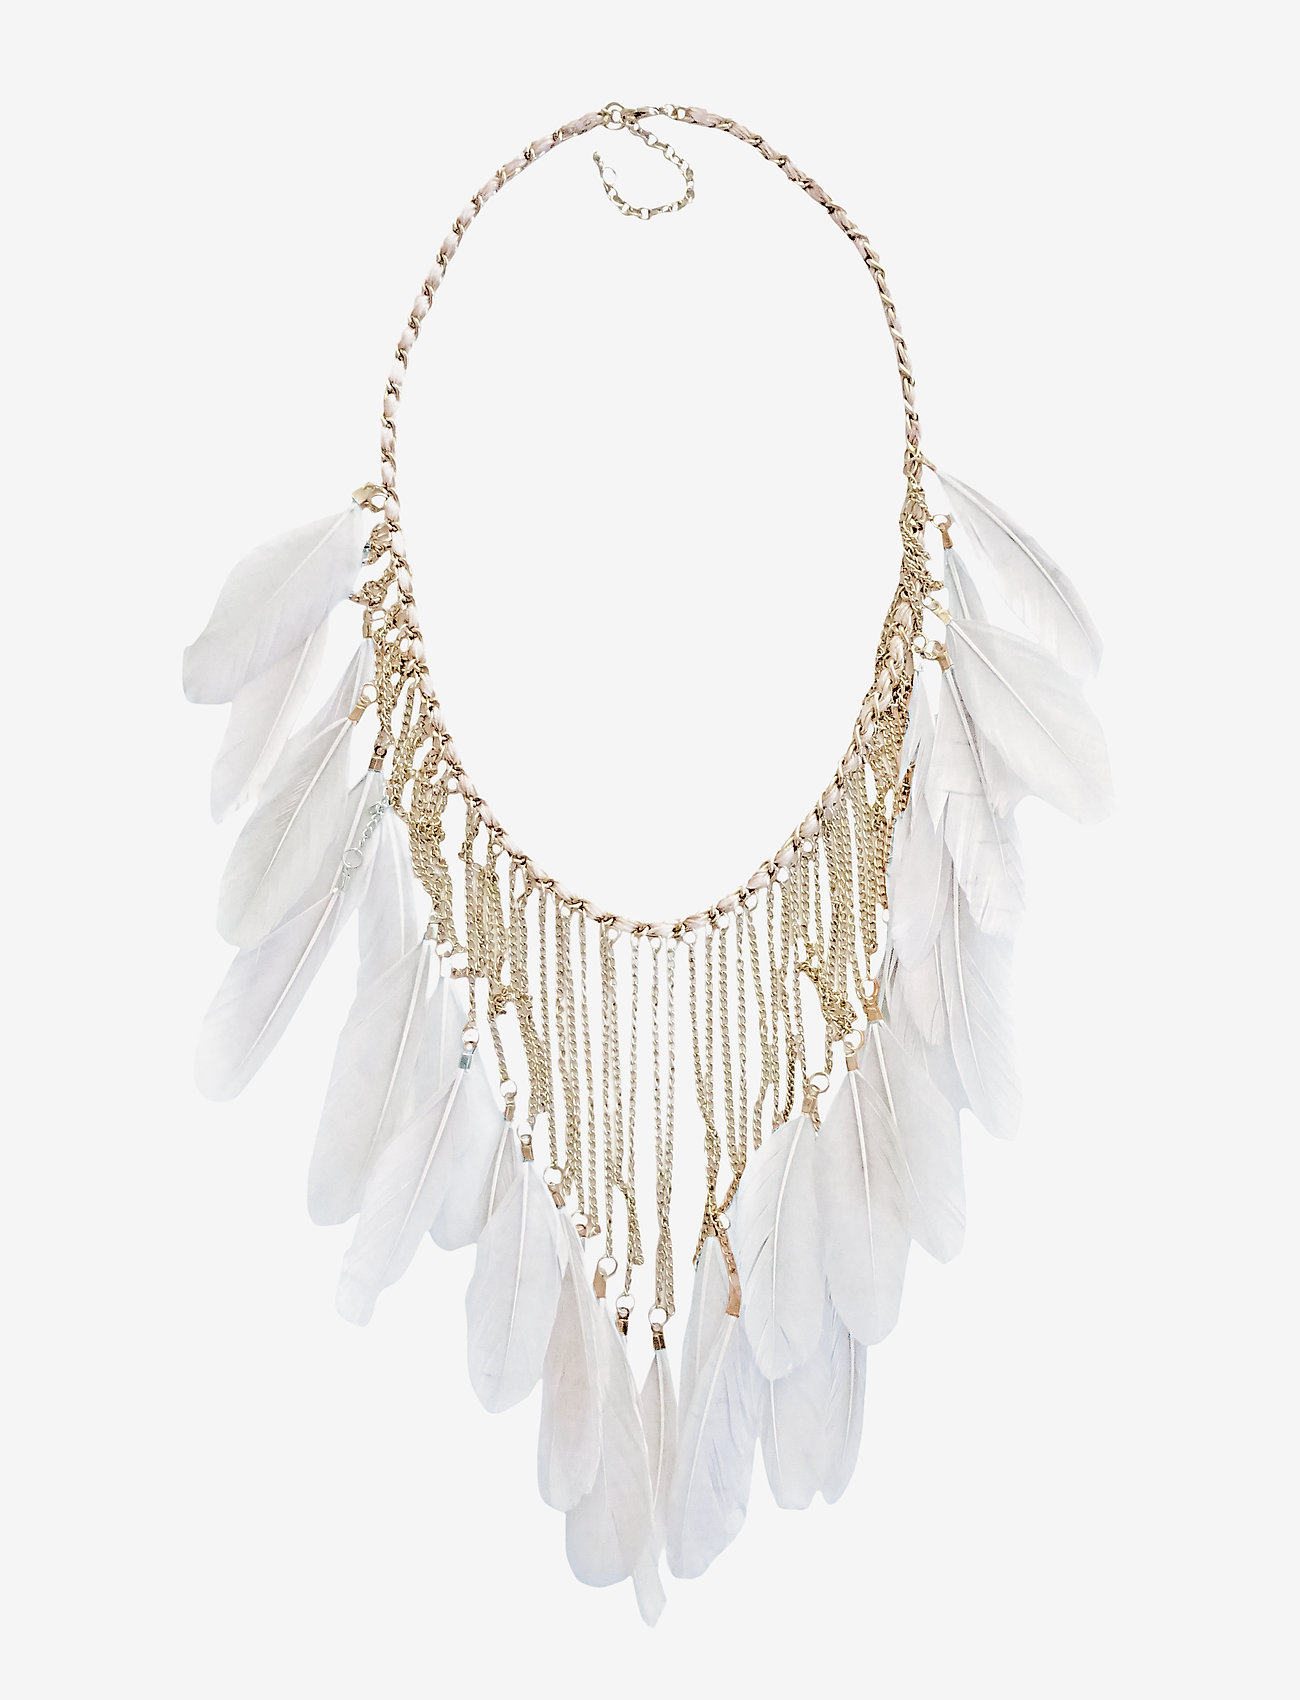 PIPOL'S BAZAAR - Drama Feather PIPOL Necklace Grey - statement necklaces - grey